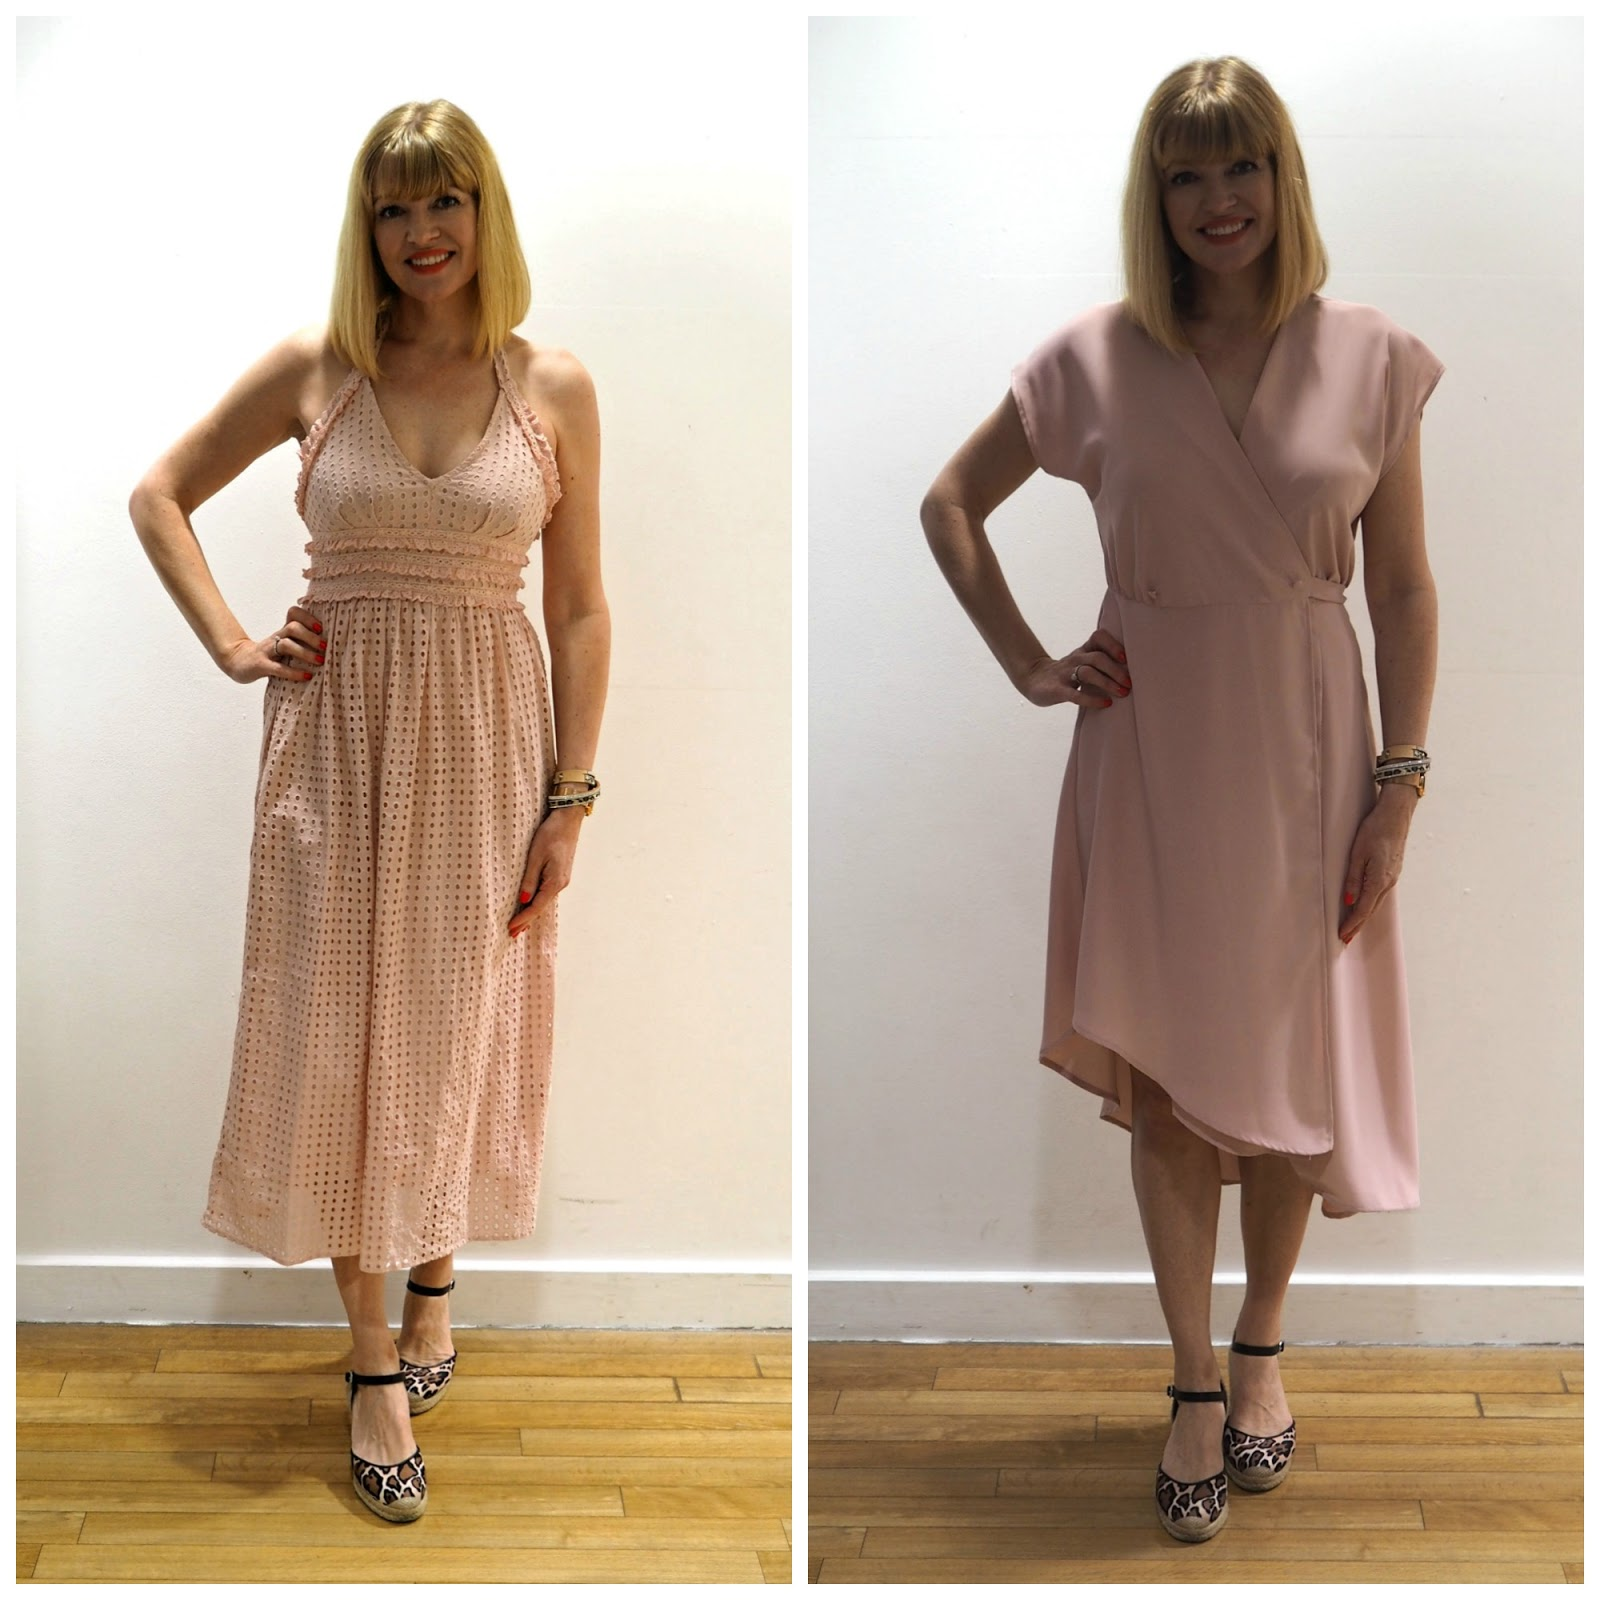 What to wear for York Races, Topshop pink dresses, over 40